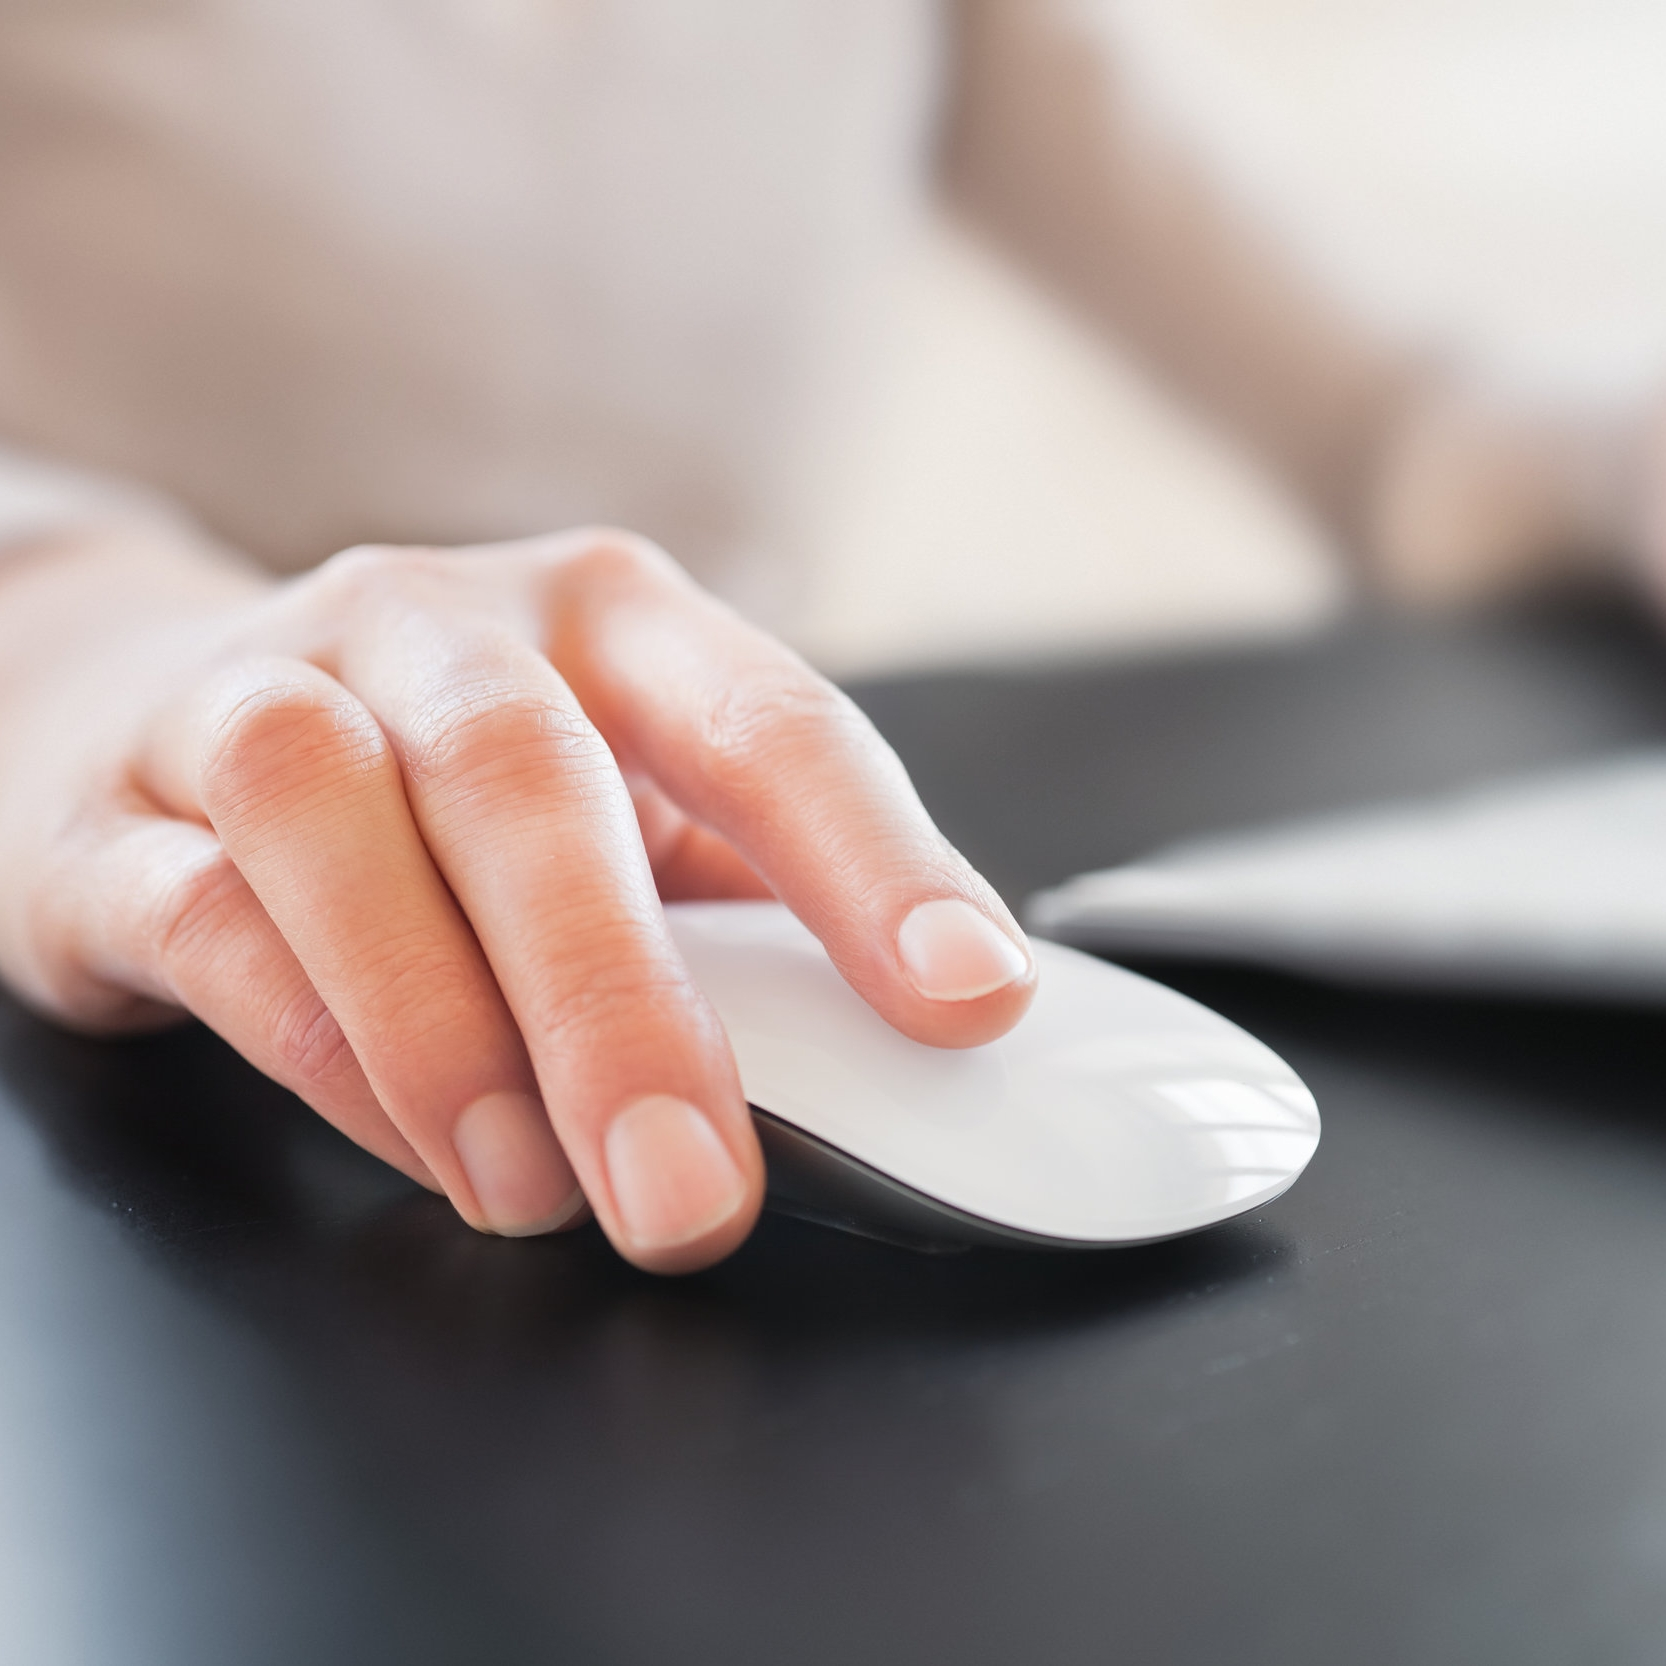 Hand-with-Computer-Mouse-185277608_5616x3744.jpeg